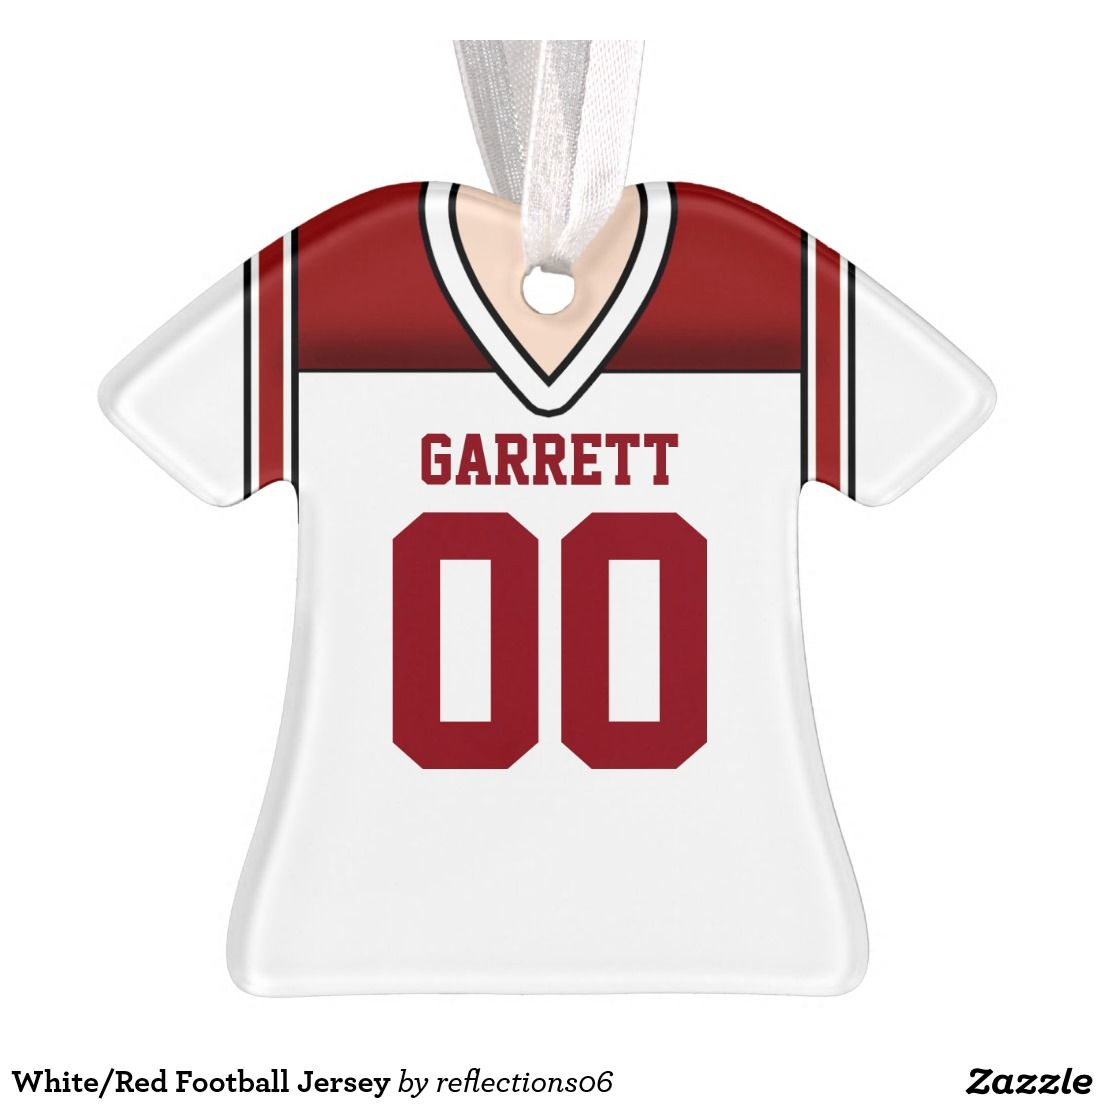 White/Red Football Jersey